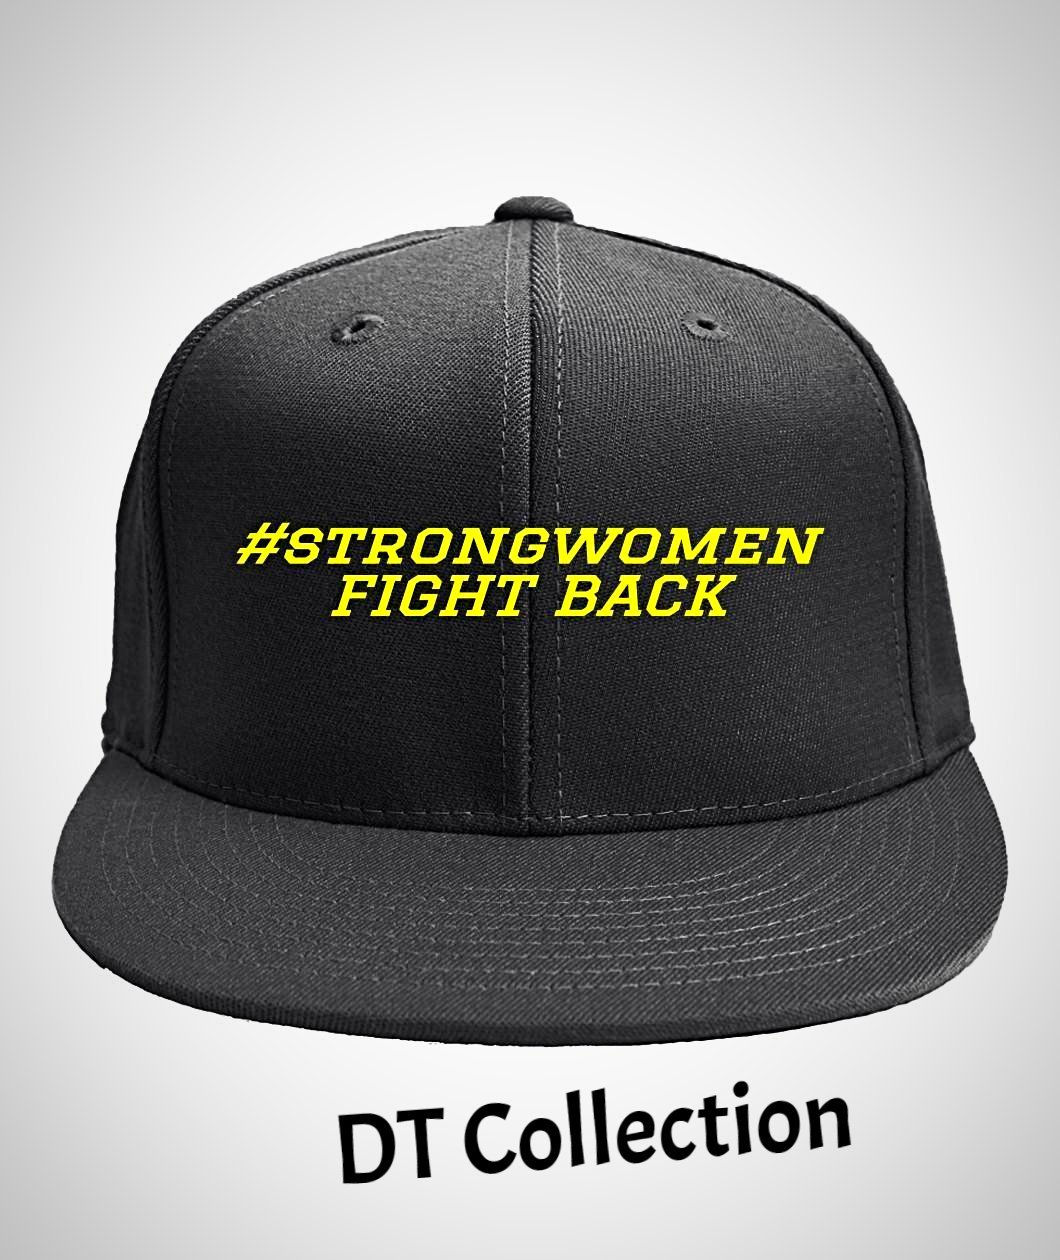 #strongwomen FIGHT BACK 6-Panel Classic Snapback